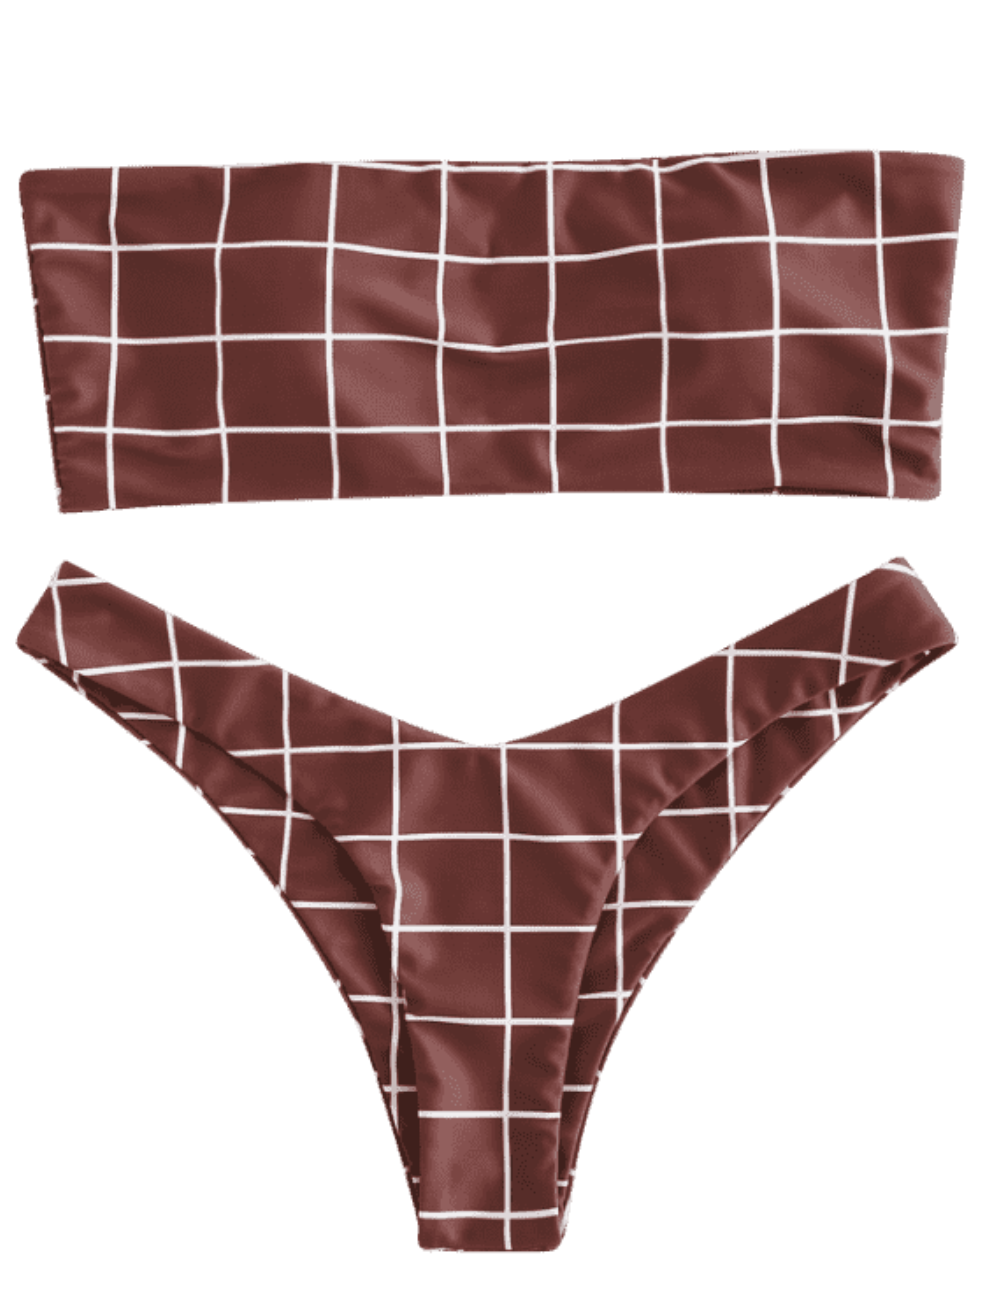 Plaid Bandeau High Leg Bikini Set - Red Wine | Cute, Sexy Honeymoon, Vacation, Summer Bikinis, Swim Suits | Miranda Schroeder Blog